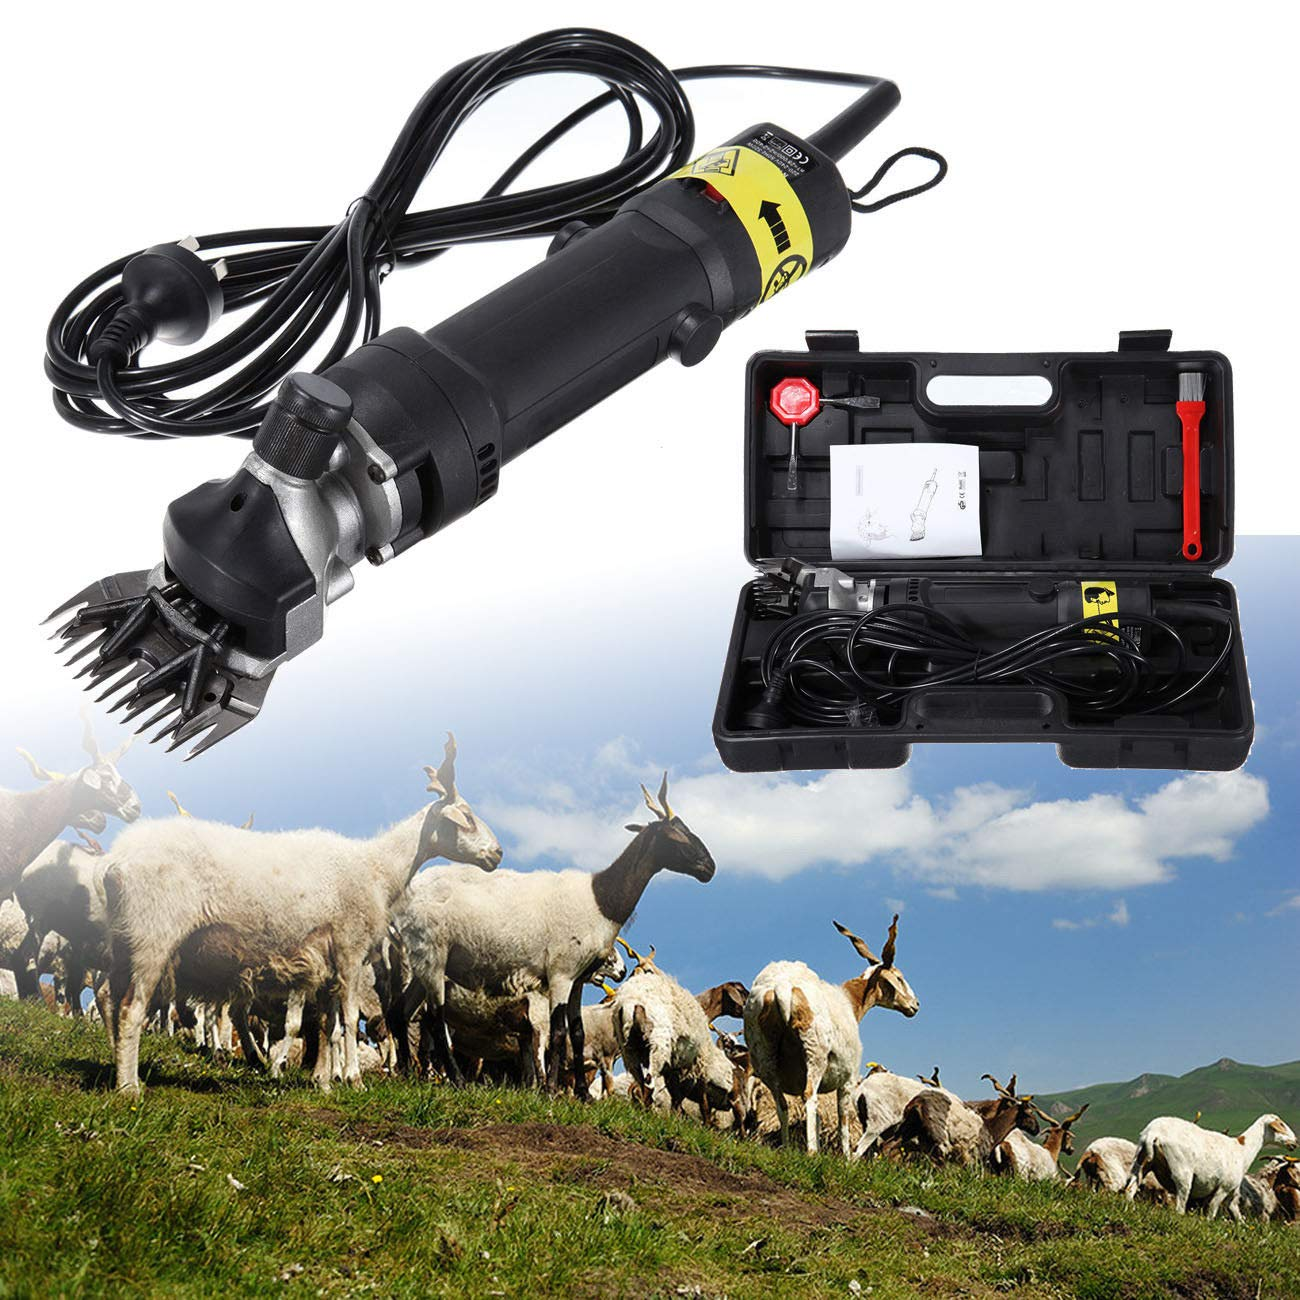 Ridgeyard Electric Farm Supplies Animal Grooming Shearing Clipper Sheep Goat Shears for Livestock Farm Supplier (320) by Ridgeyard